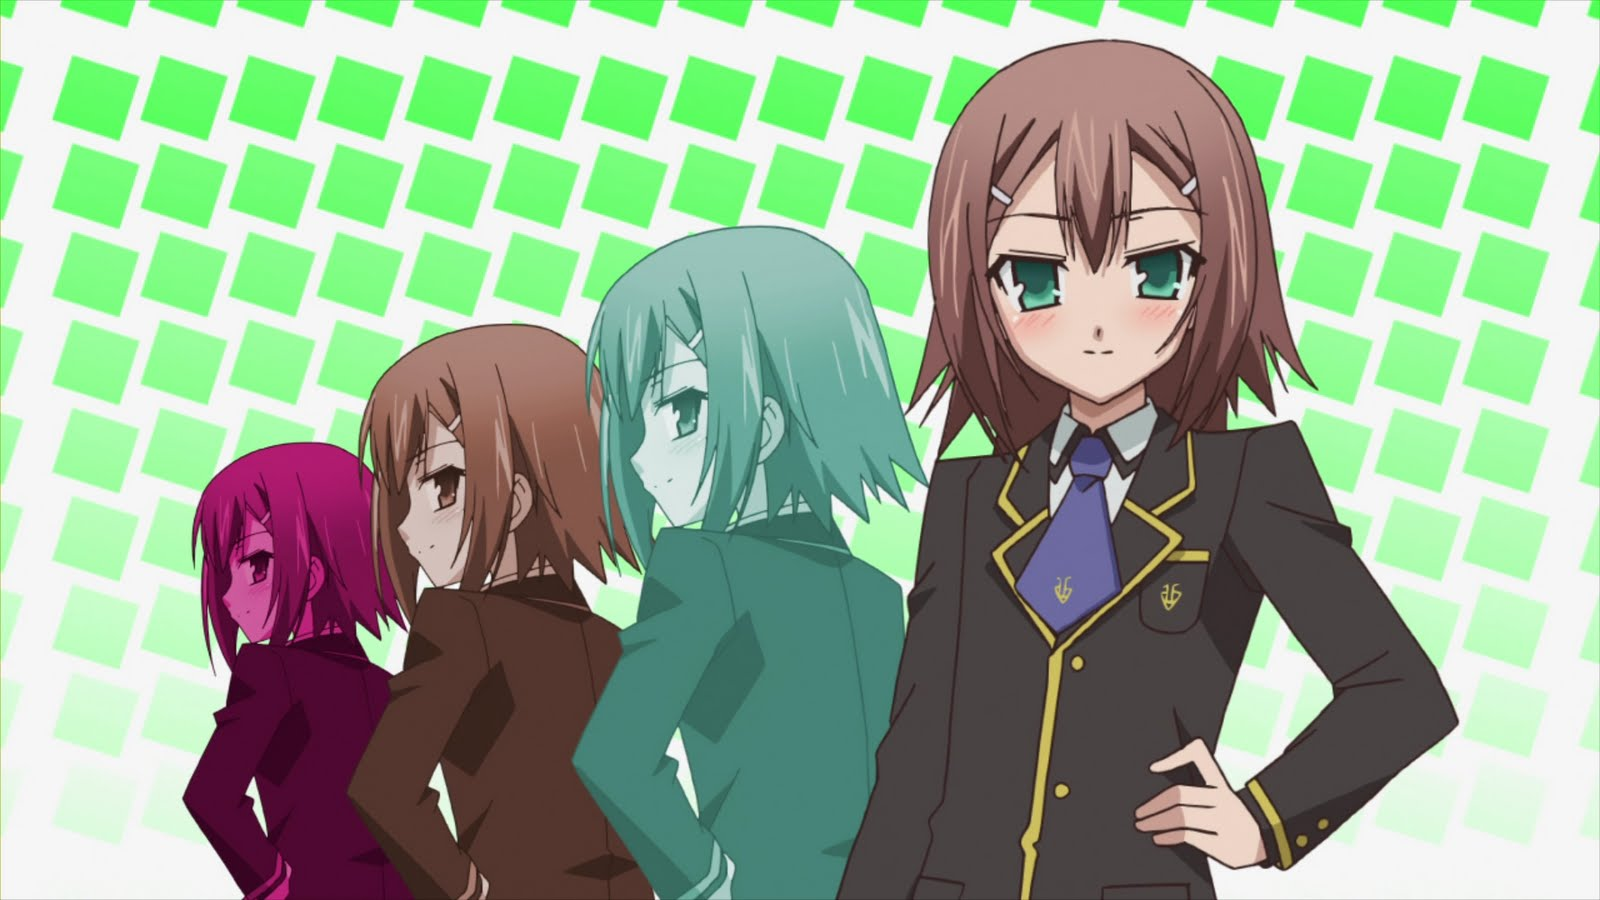 baka and test hideyoshi